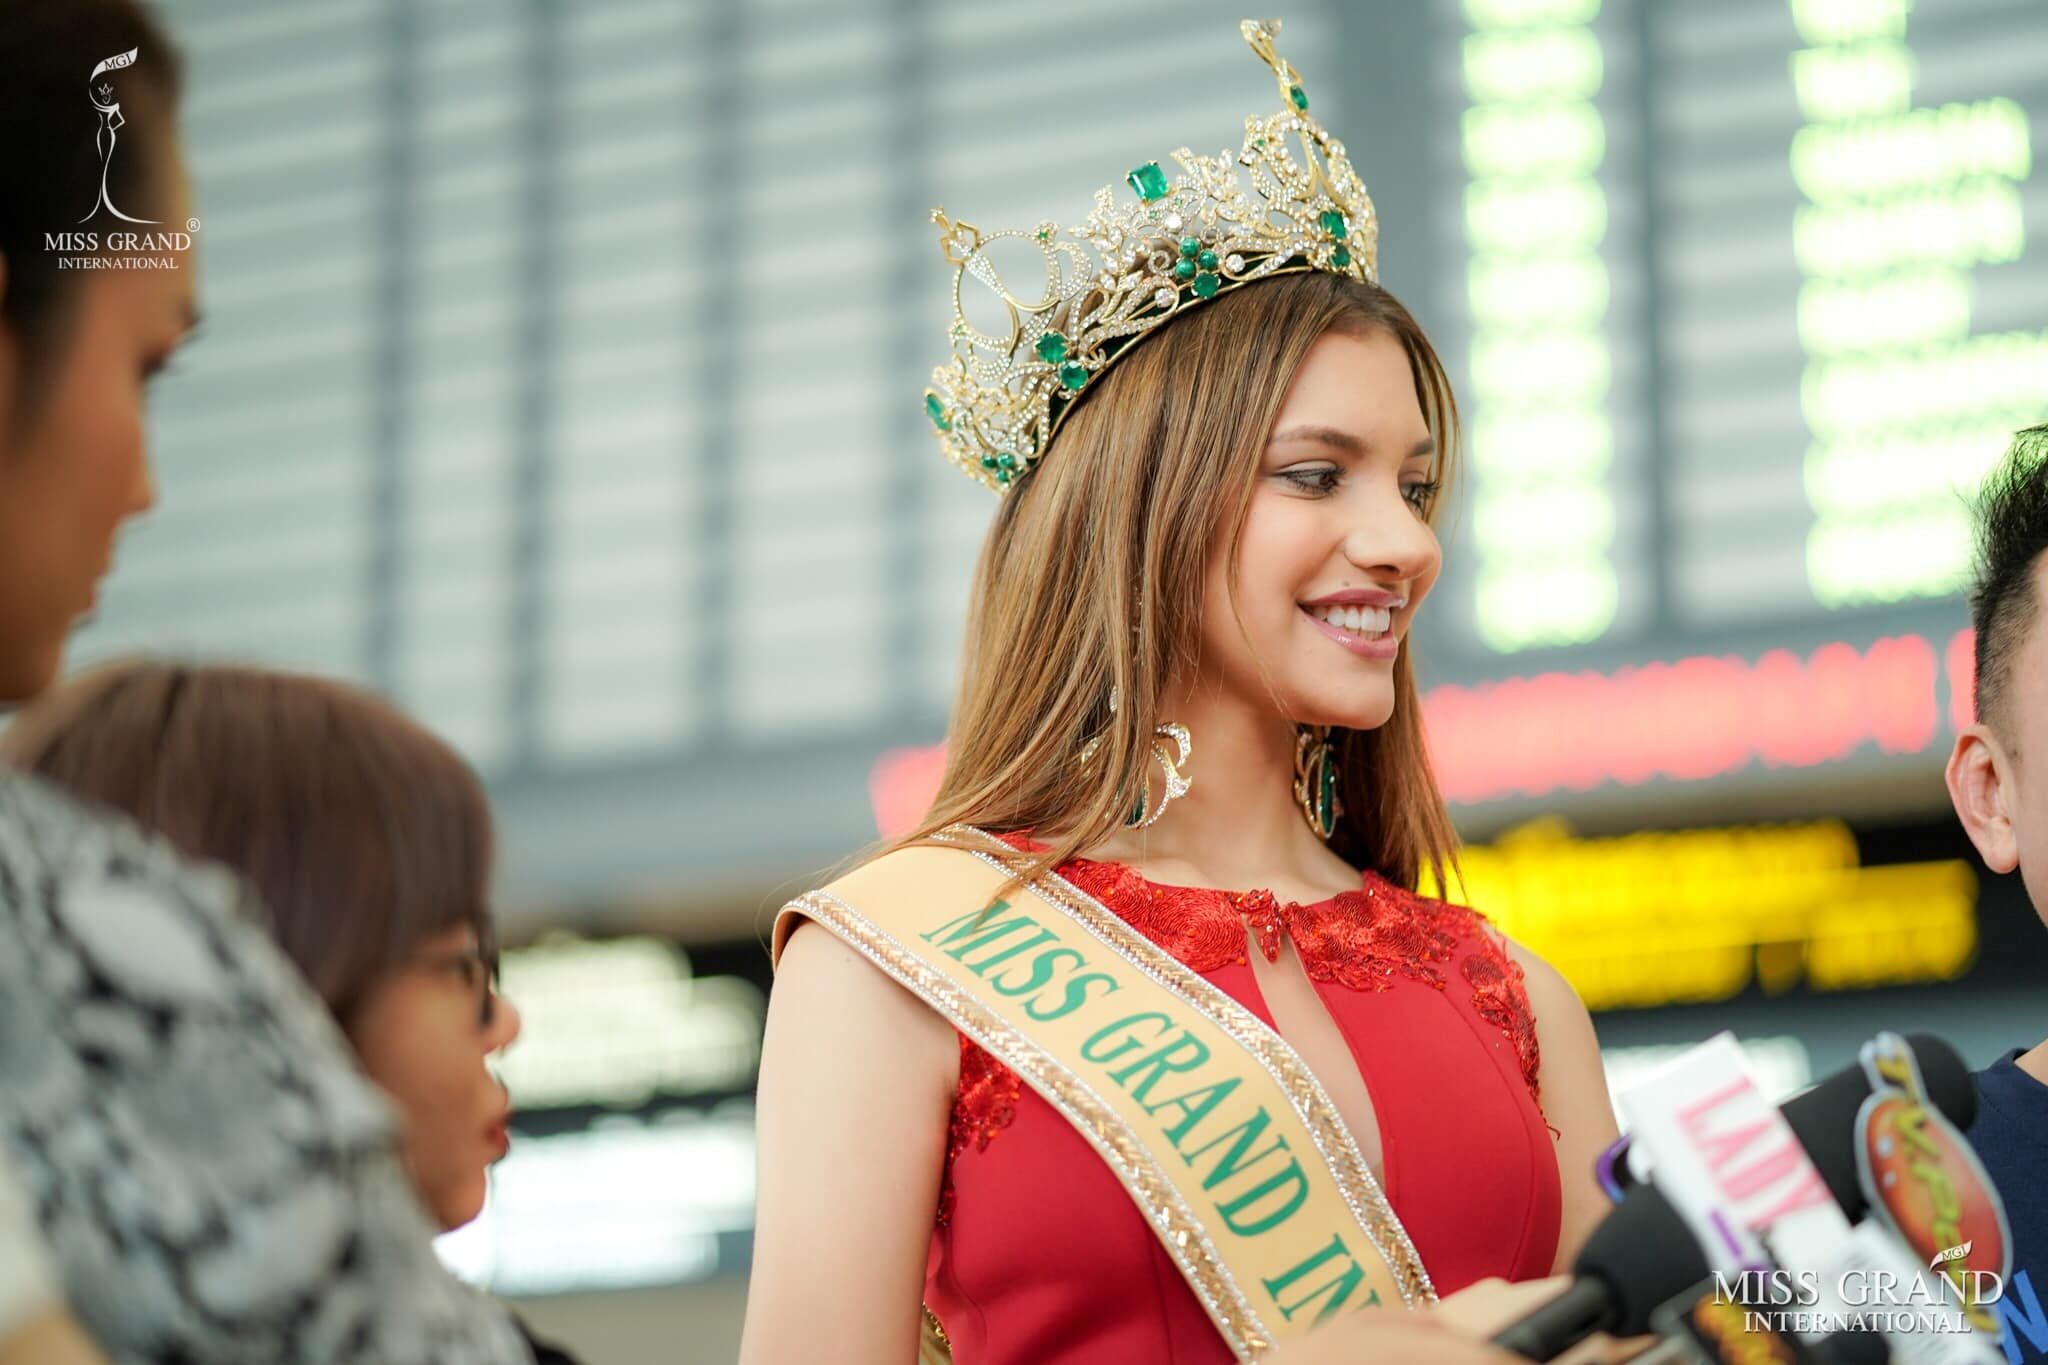 lourdes valentina figuera, miss grand international 2019. - Página 13 Pr8oc10